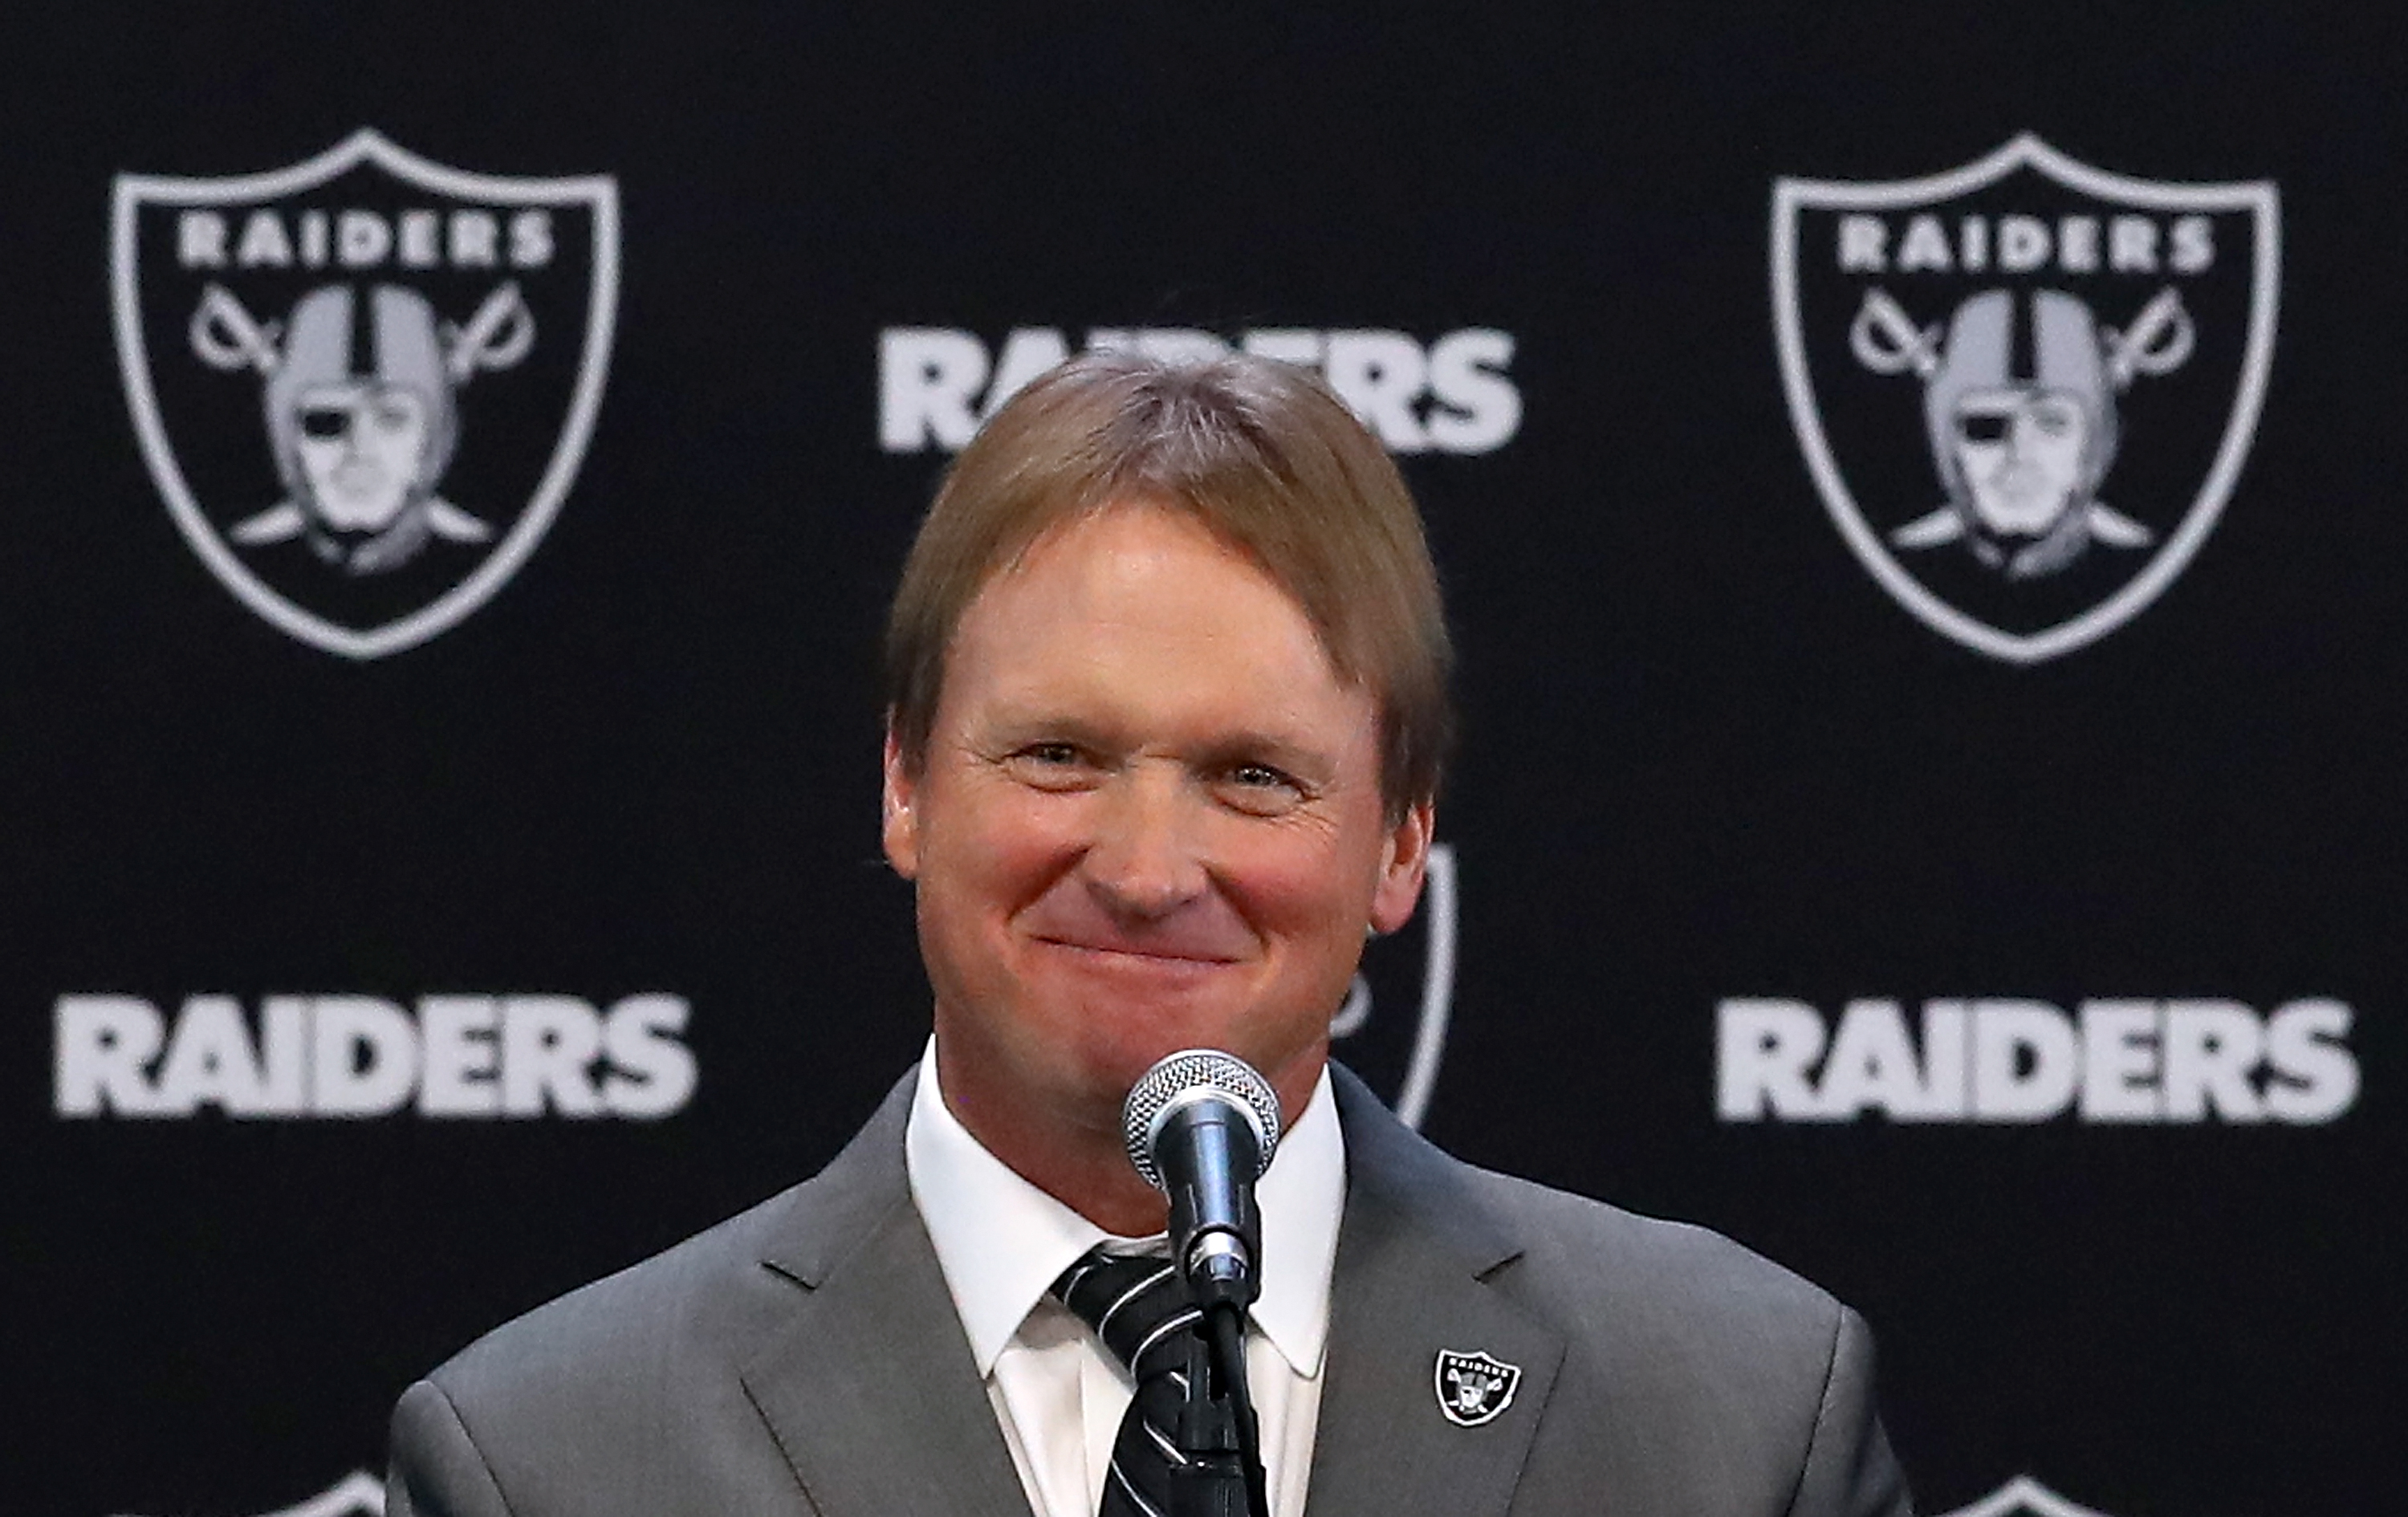 Oakland Raiders to introduce Jon Gruden as new coach